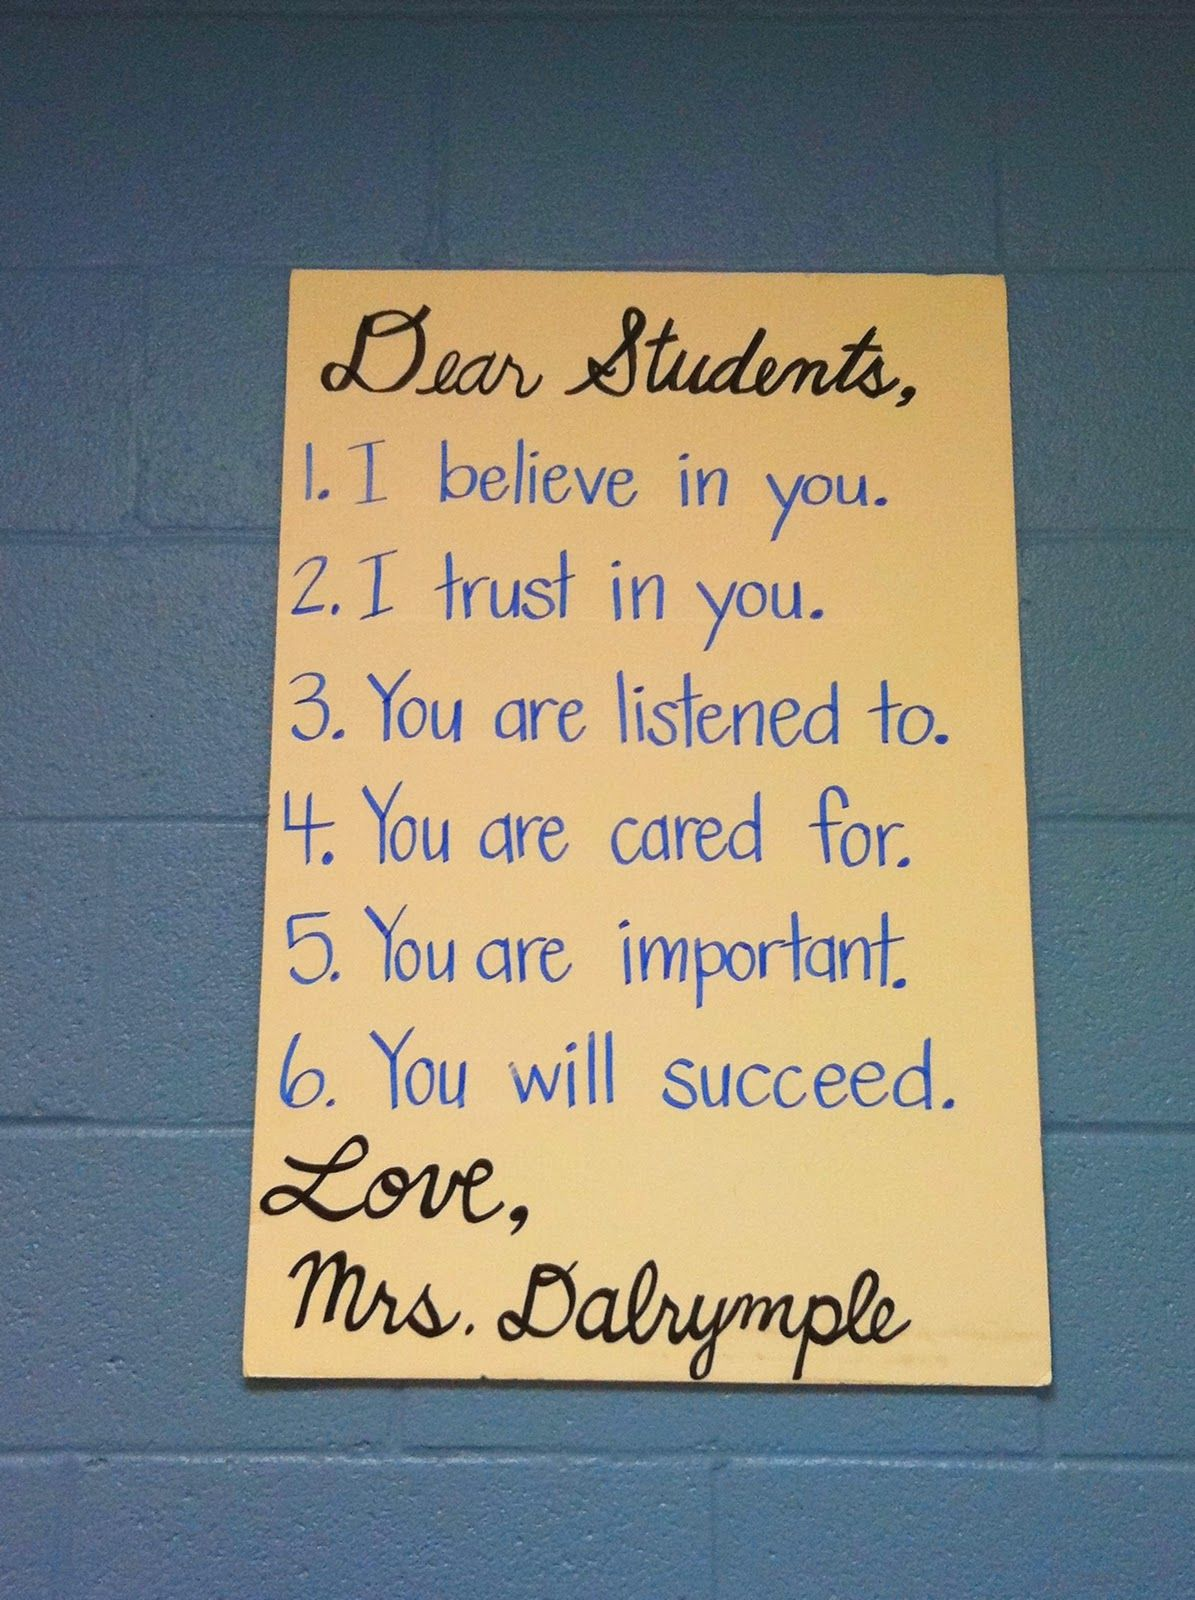 I would love to have this in my classroom